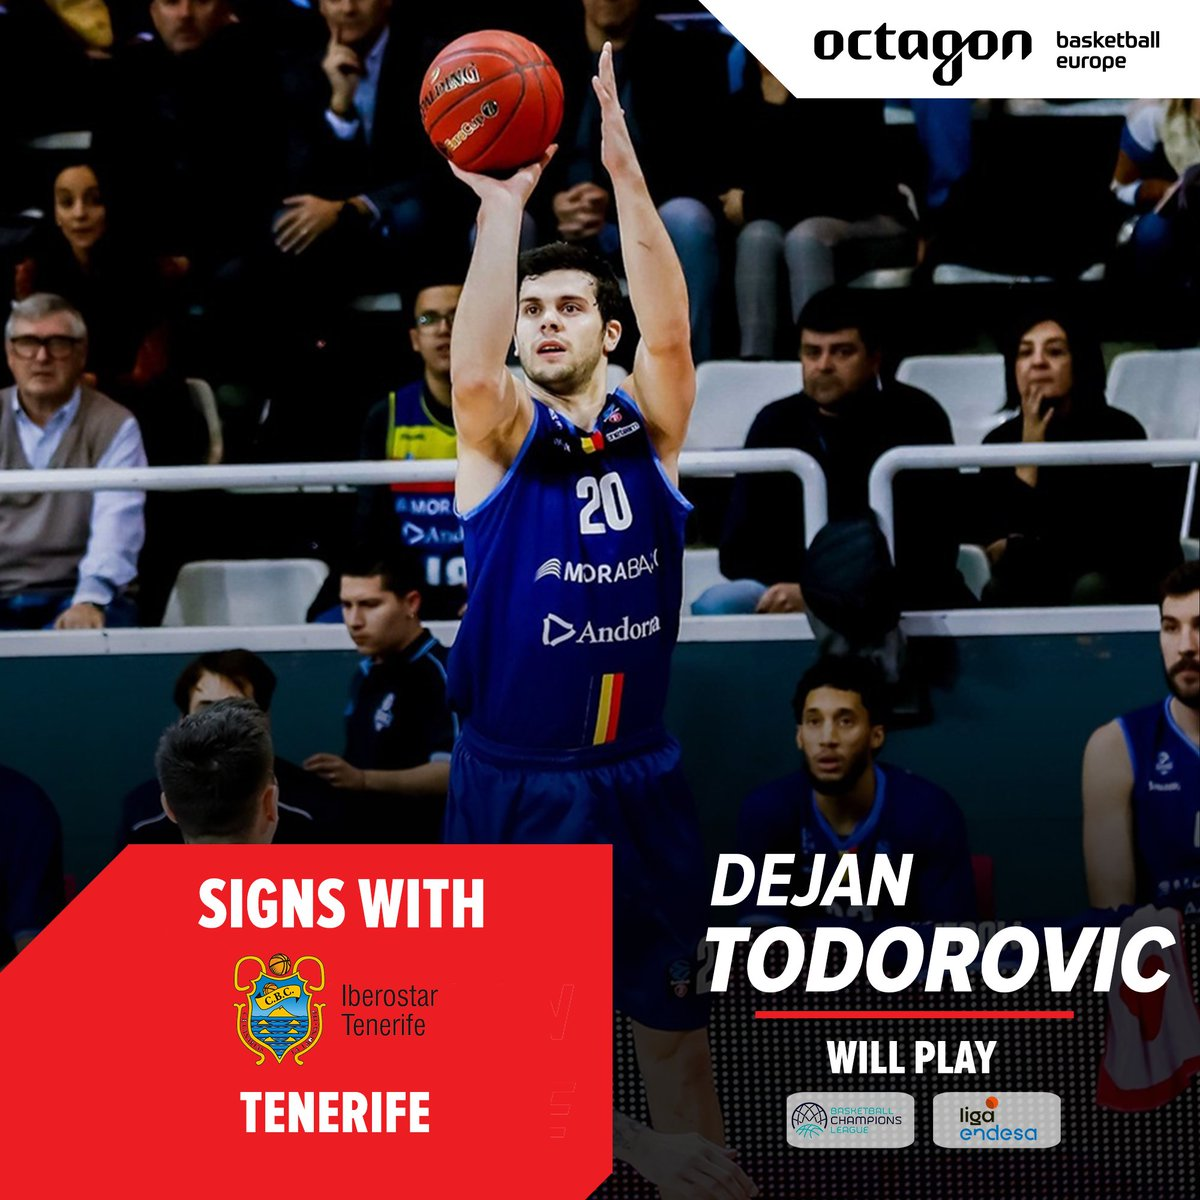 Dejan Todorovic @ToDeki94 is moving to Tenerife, as the Serbian forward inks a multi-year deal with the @ACBCOM and @BasketballCL club #octagonpic.twitter.com/OrPcarL2lP